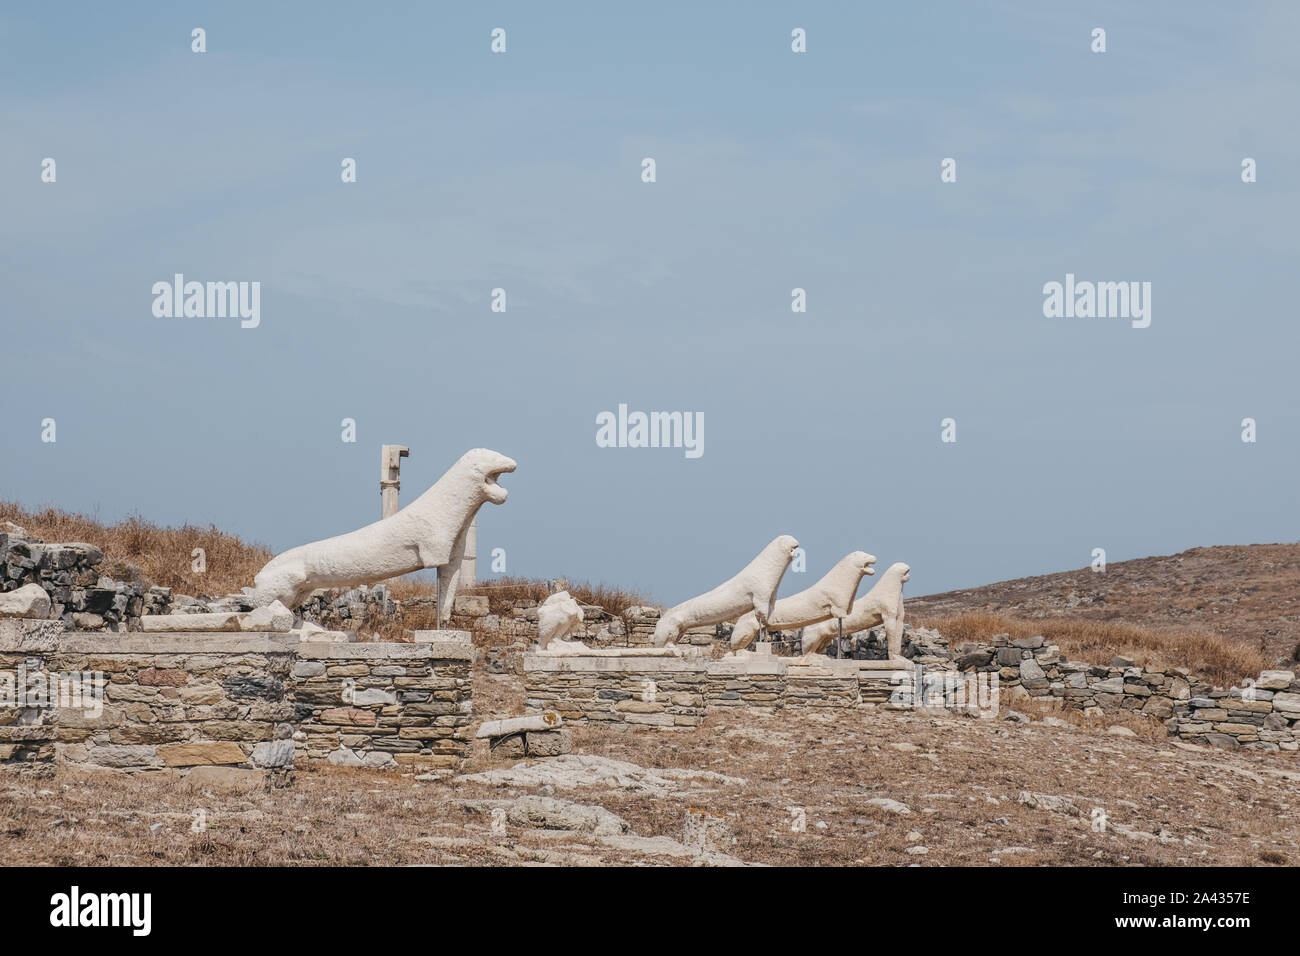 Naxian Lions statues on The Terrace of the Lions on the Greek island of Delos, archaeological site near Mykonos in the Aegean Sea Cyclades archipelago Stock Photo